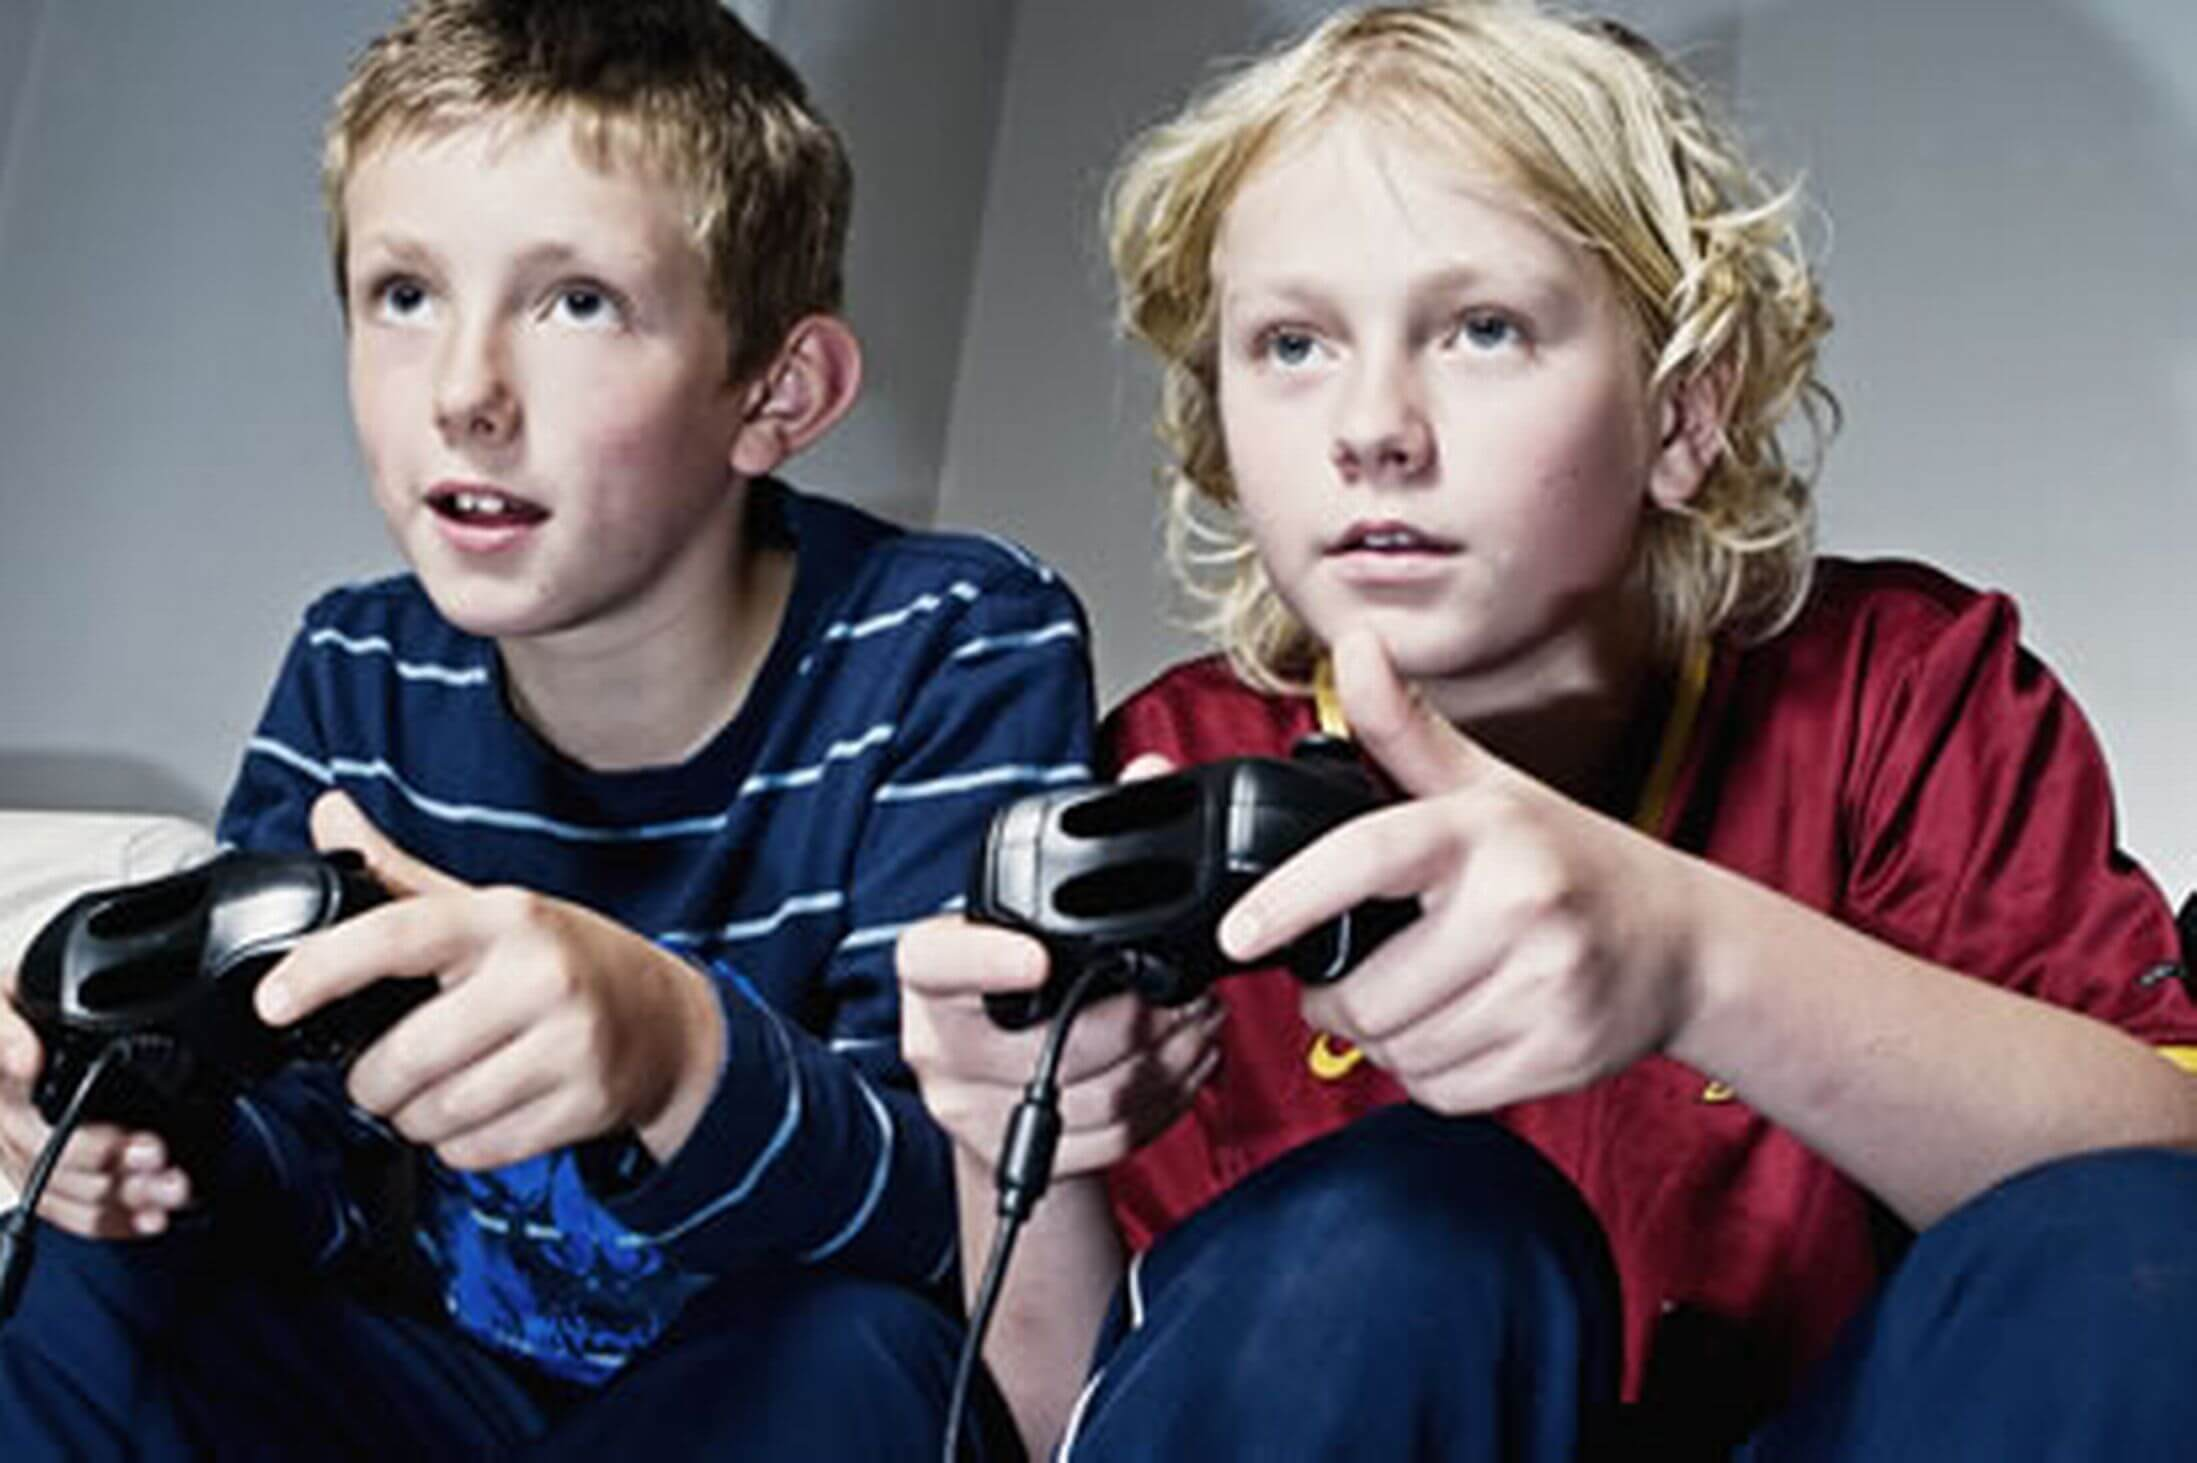 children-playing-on-computer-games-console-image-1-5212007822